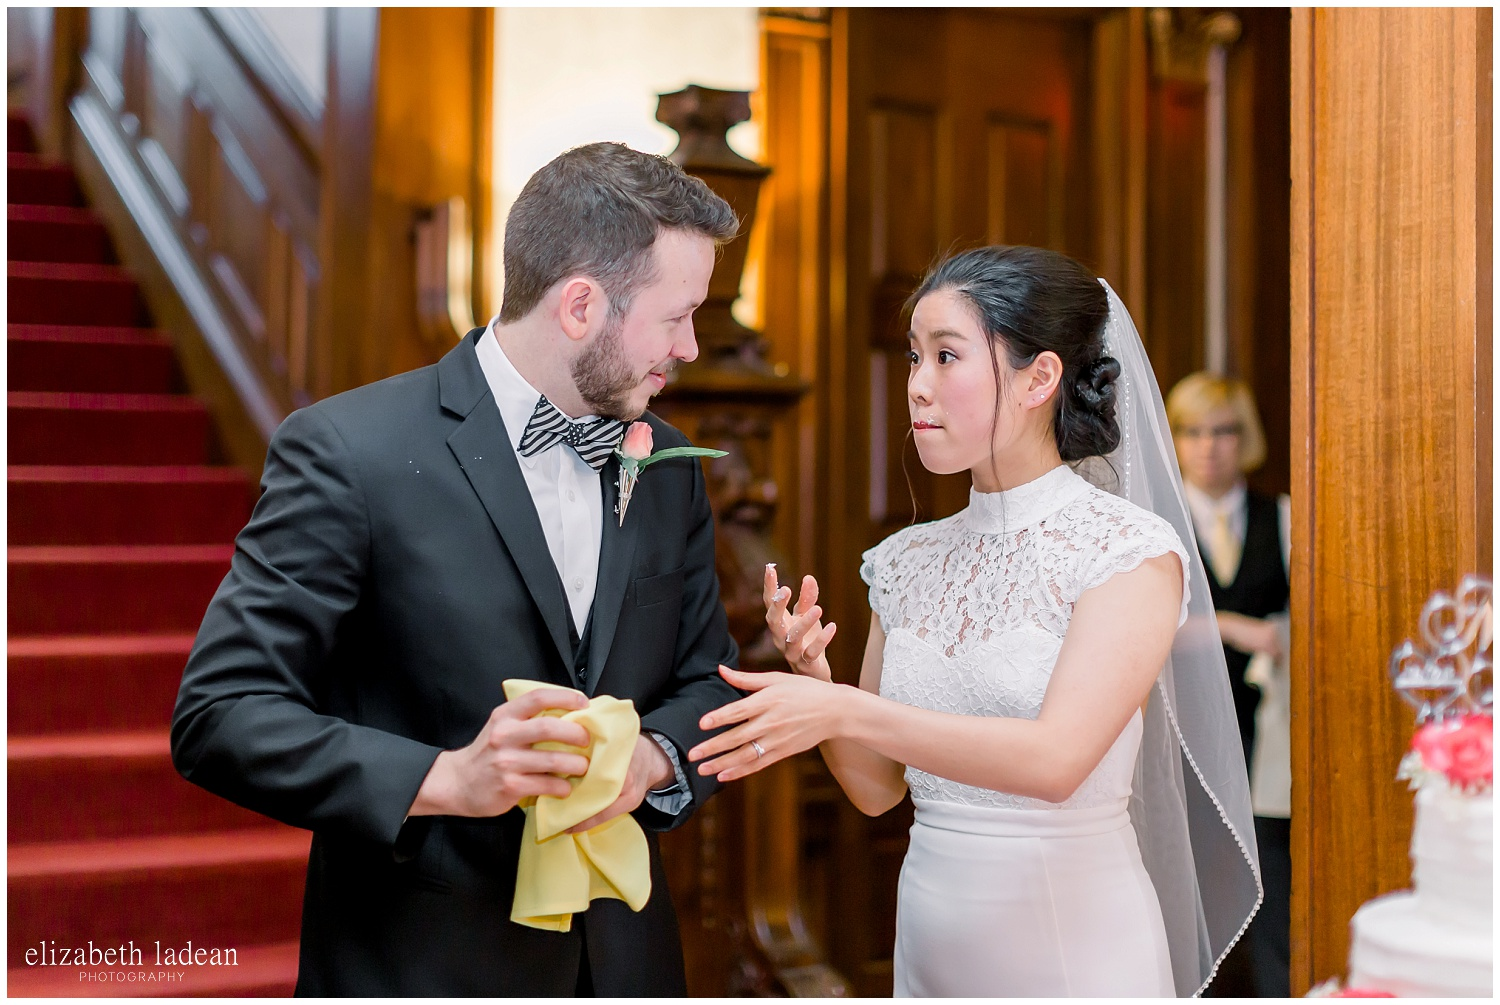 -behind-the-scenes-of-a-wedding-photographer-2018-elizabeth-ladean-photography-photo_3524.jpg